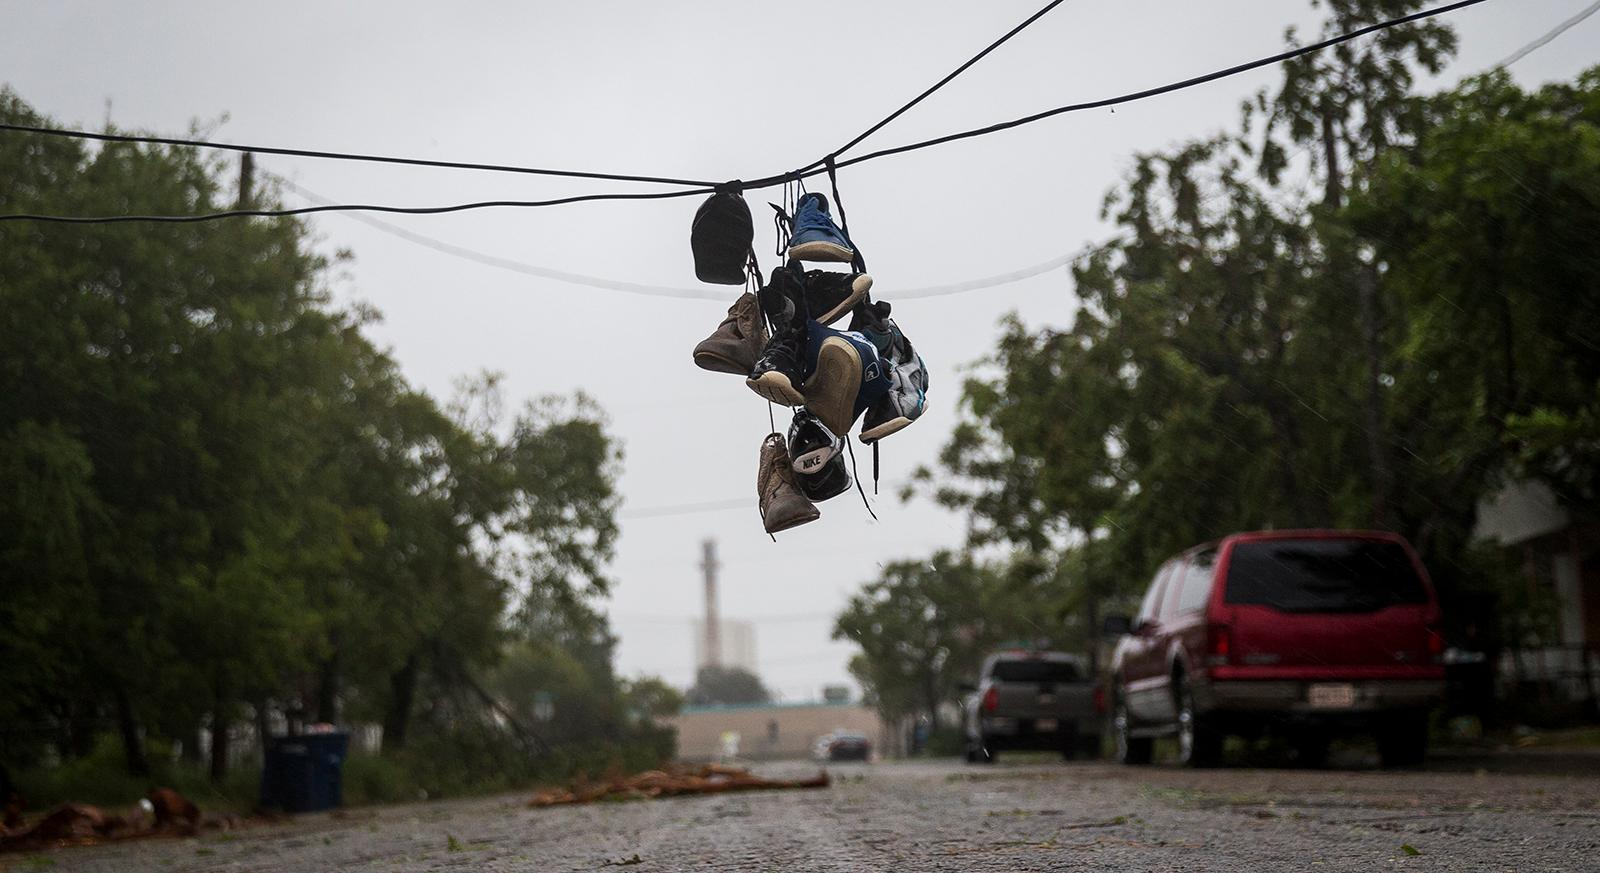 Shoes tied to a power line hang near a street after winds from Hurricane Harvey brought down a power pole in Corpus Christi, Texas, on Friday, Aug. 25, 2017. Hurricane Harvey smashed into Texas late Friday, lashing a wide swath of the Gulf Coast with strong winds and torrential rain from the fiercest hurricane to hit the U.S. in more than a decade.  (Nick Wagner/Austin American-Statesman via AP)